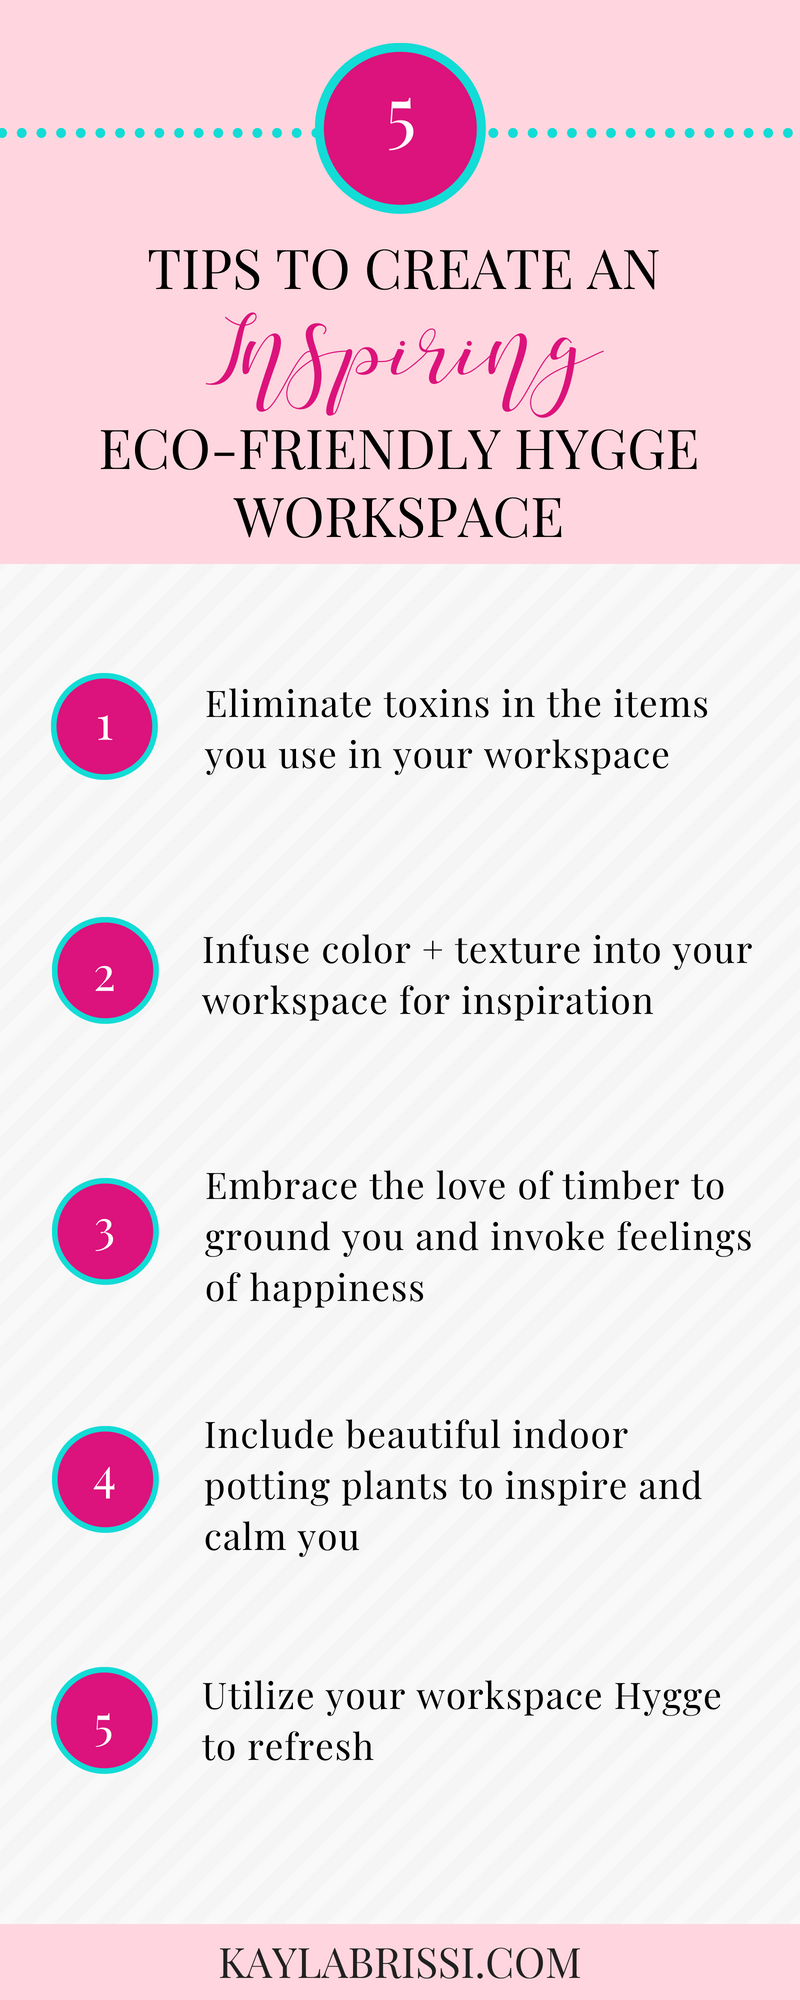 5 TIPS TO CREATE AN INSPIRING ECO-FRIENDLY HYGGE WORKSPACE INFOGRAPHIC